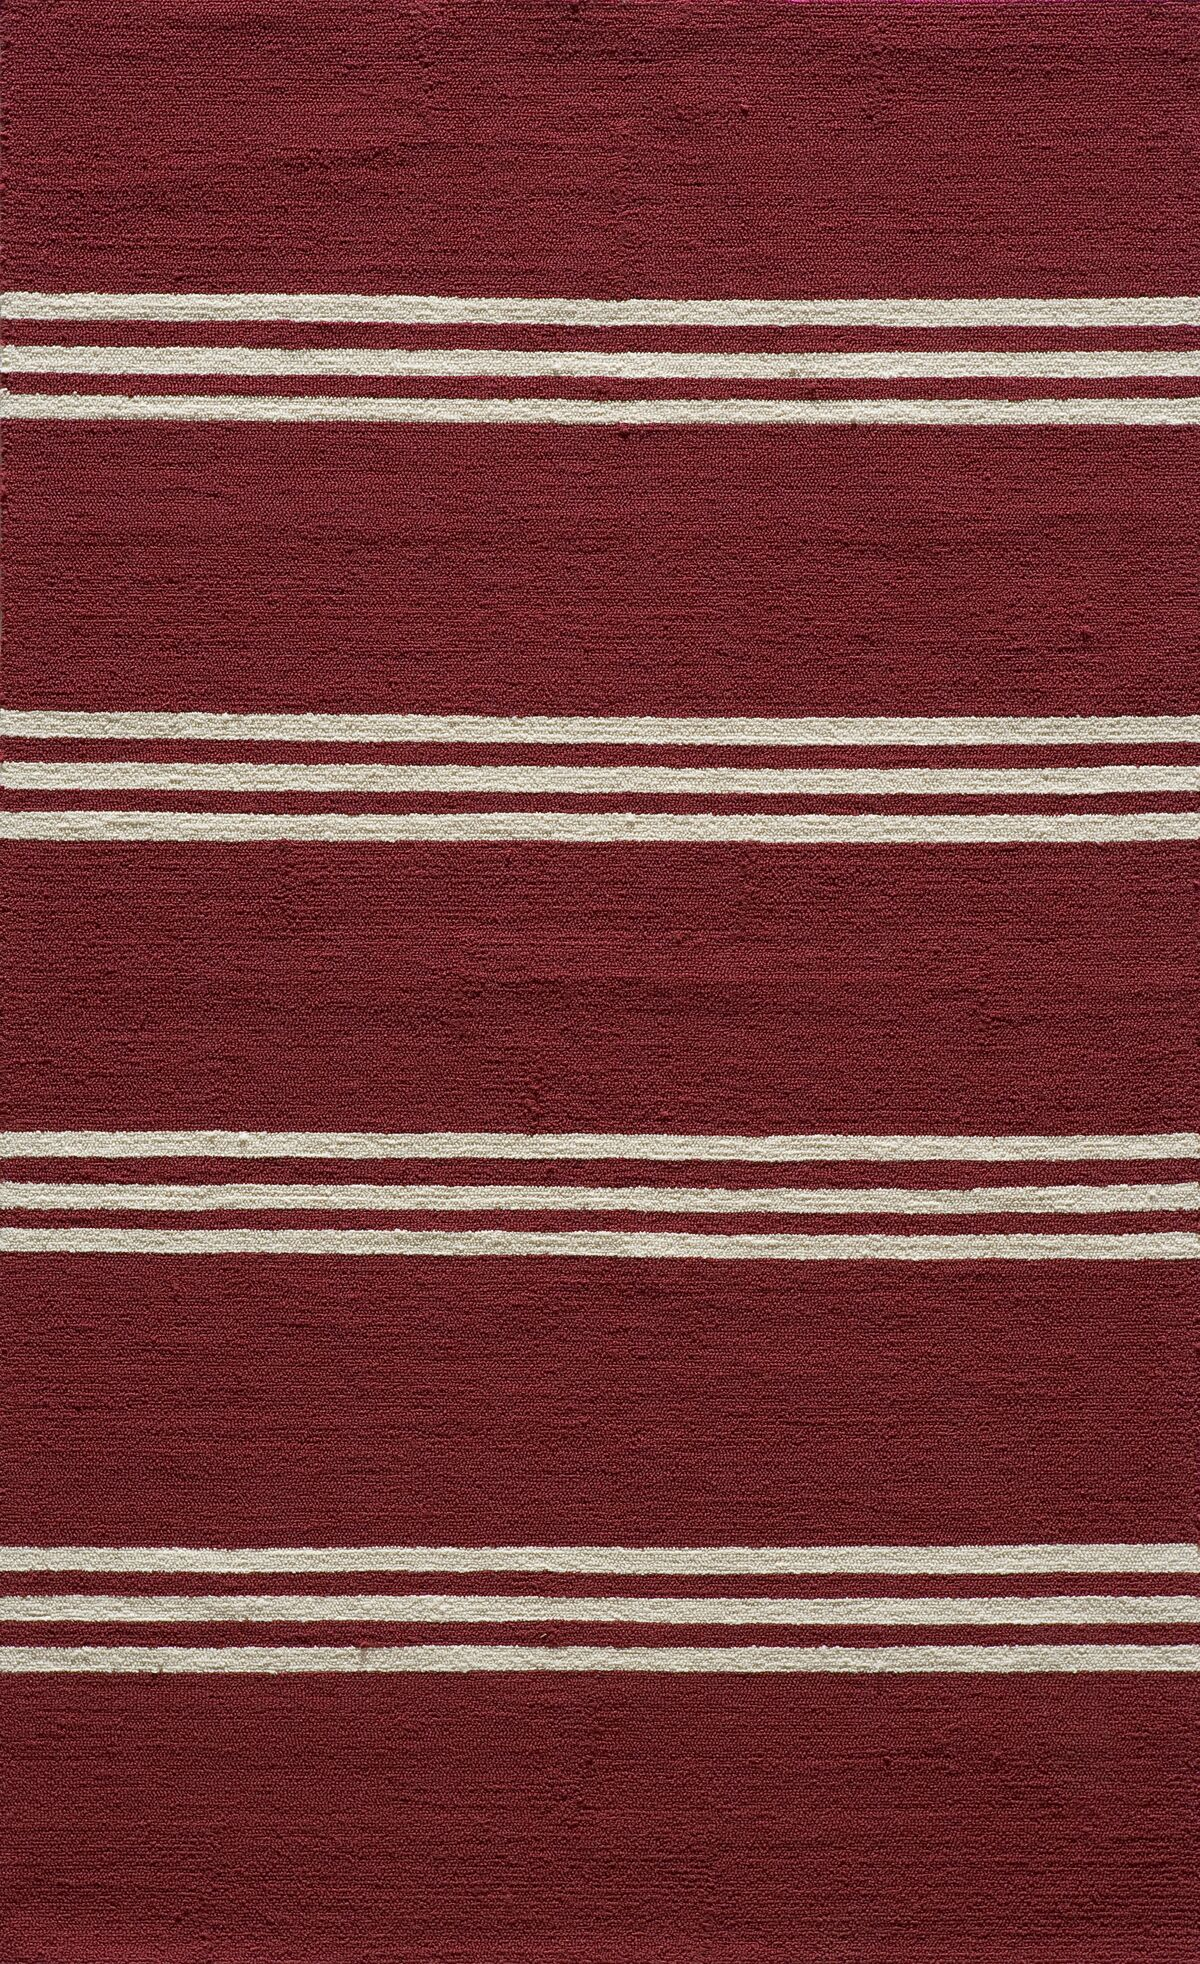 Dreadnought Hand-Hooked Red Area Rug Rug Size: Rectangle 5' x 8'